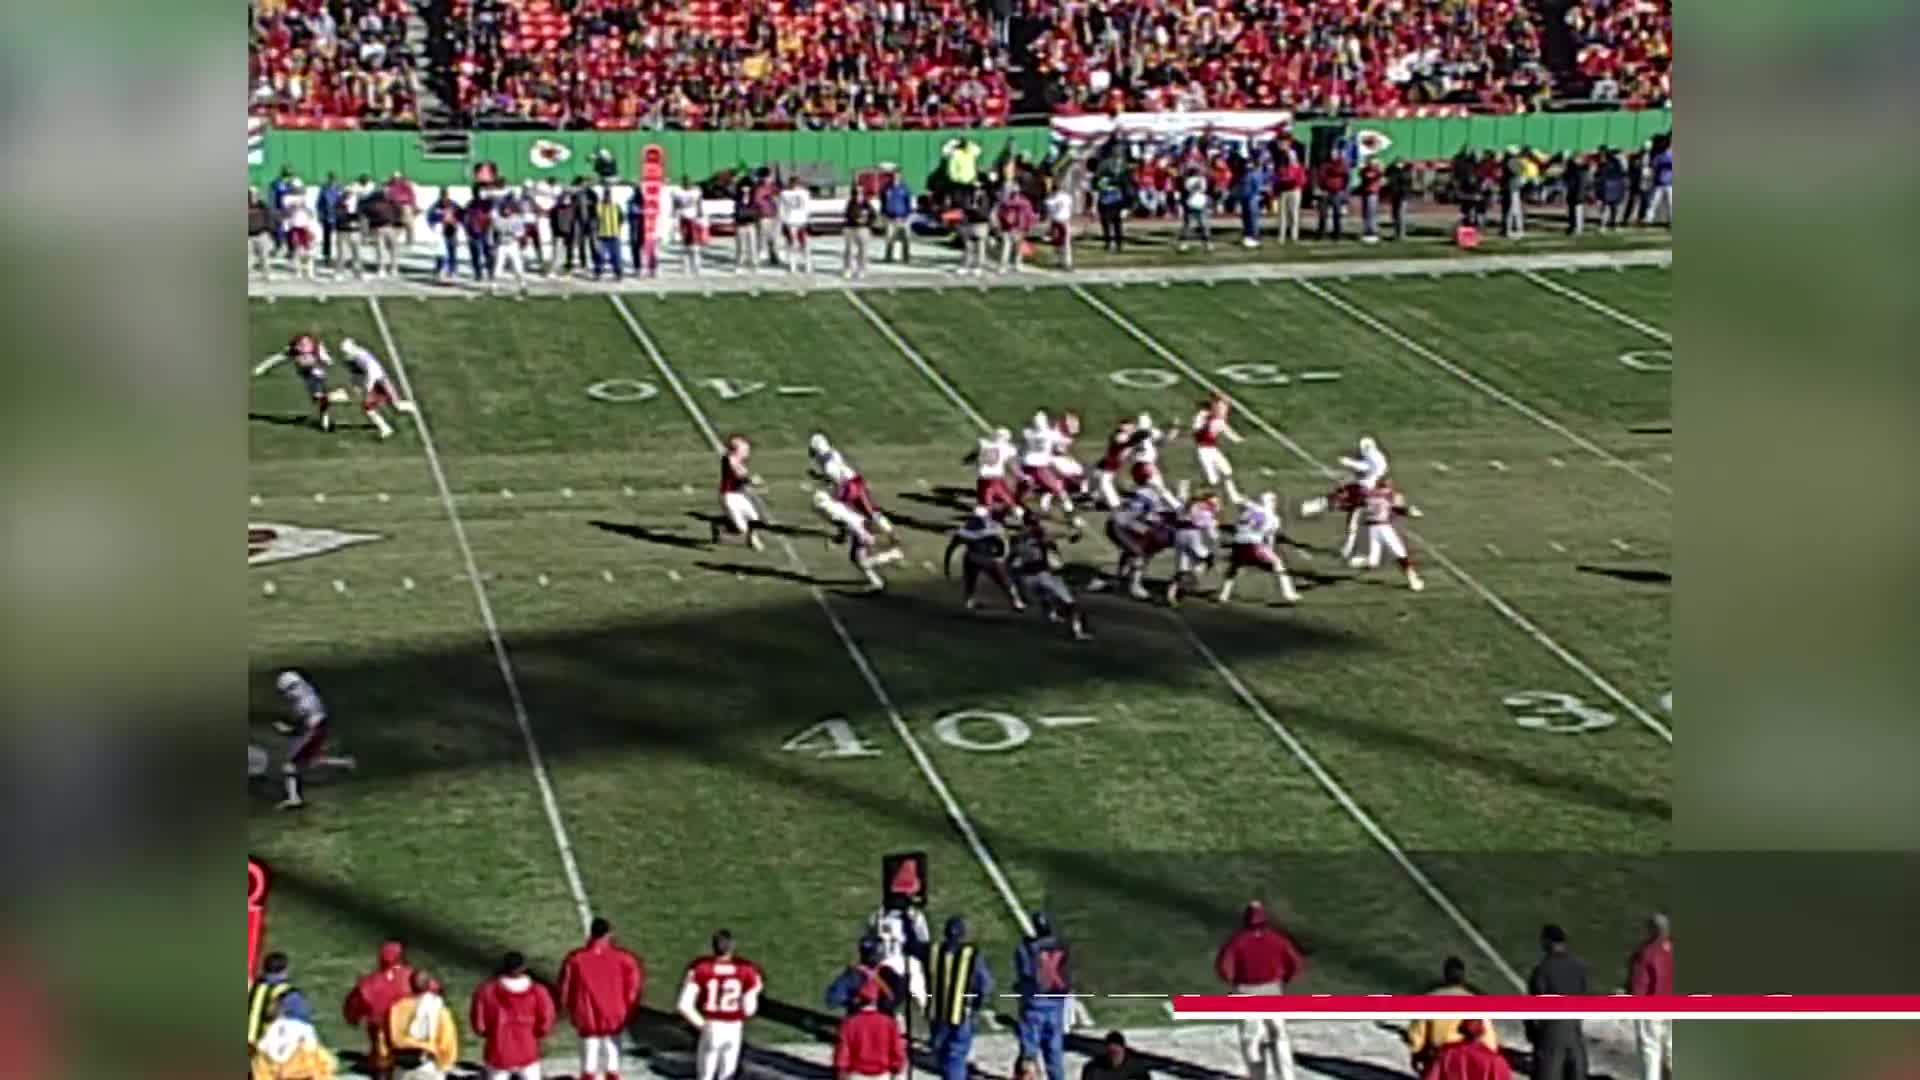 American Football, Football, NFL, afc, defense, nfc, offense, play, sport, sports, Dante Hall vs Cardinals GIFs